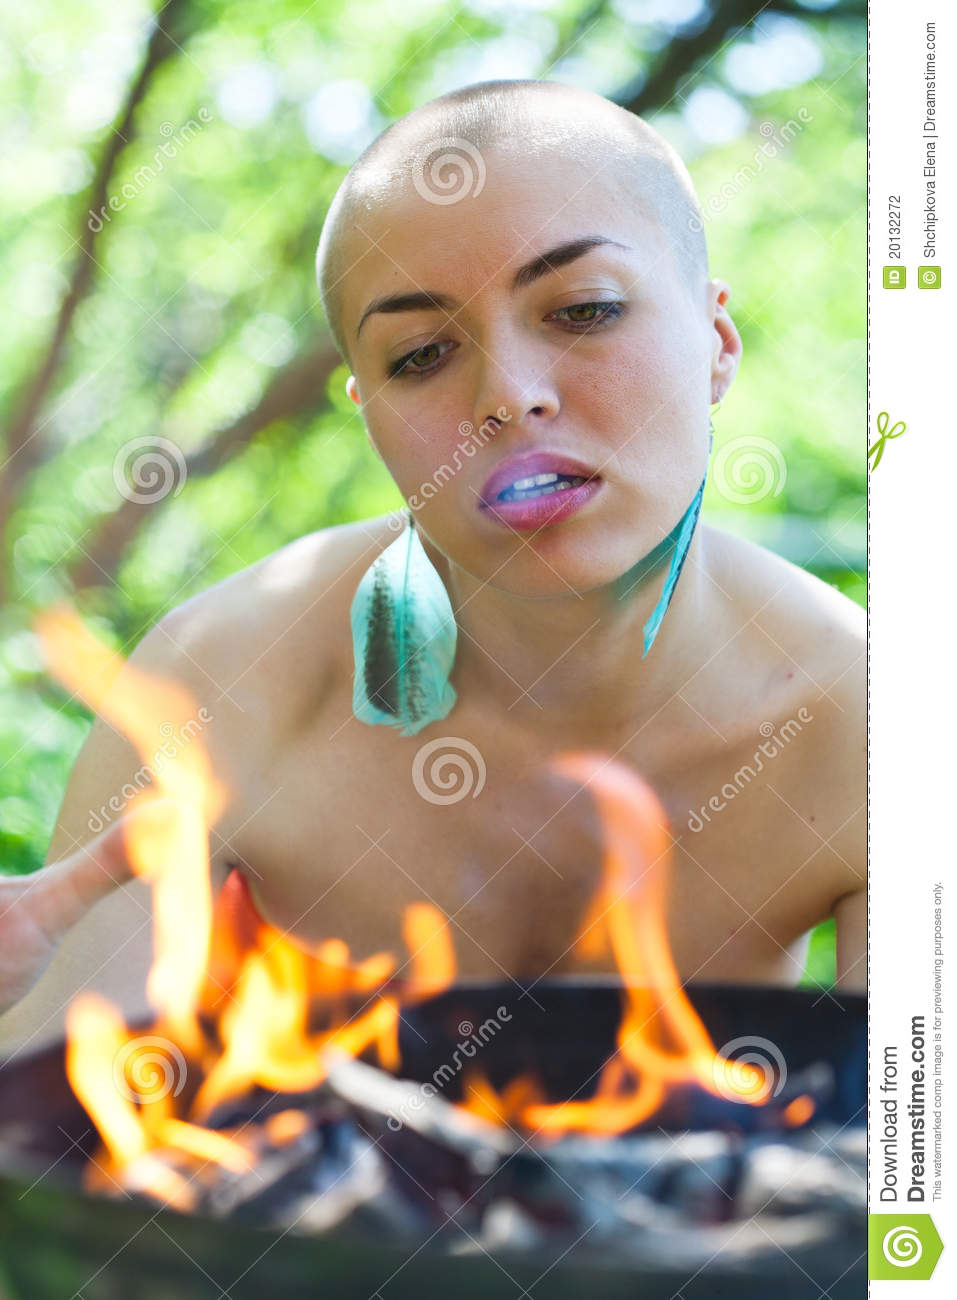 Stock Photography Bald Girl Image20132272 also Batman No Killing Rule Morally Absurd 25246 further Austin additionally User Avatars Without Faces 374087 in addition 428 Coiffure Avec Un Bandeau. on hippie head